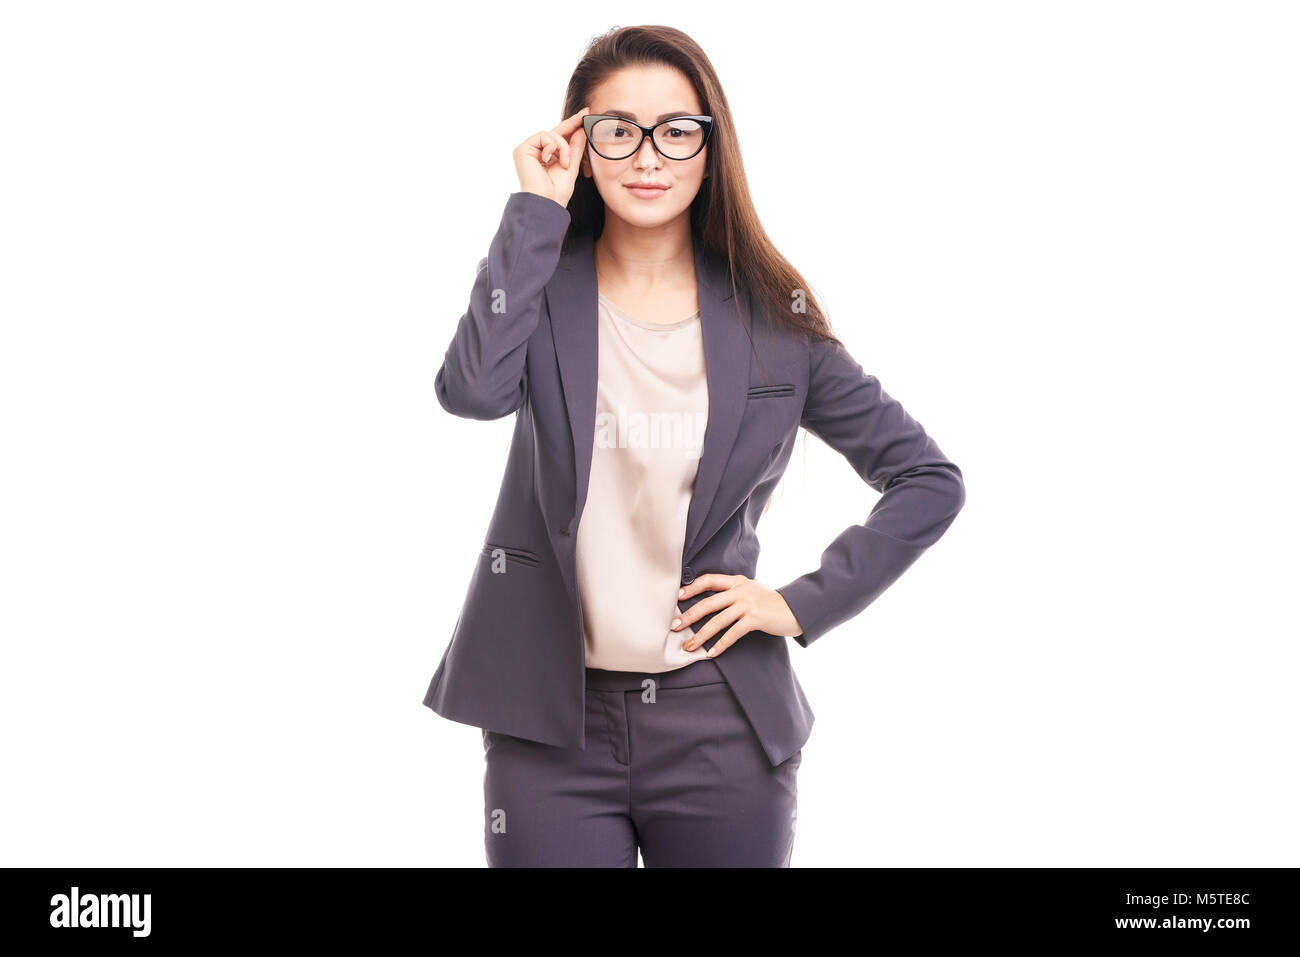 Businesswoman with eyeglasses - Stock Image